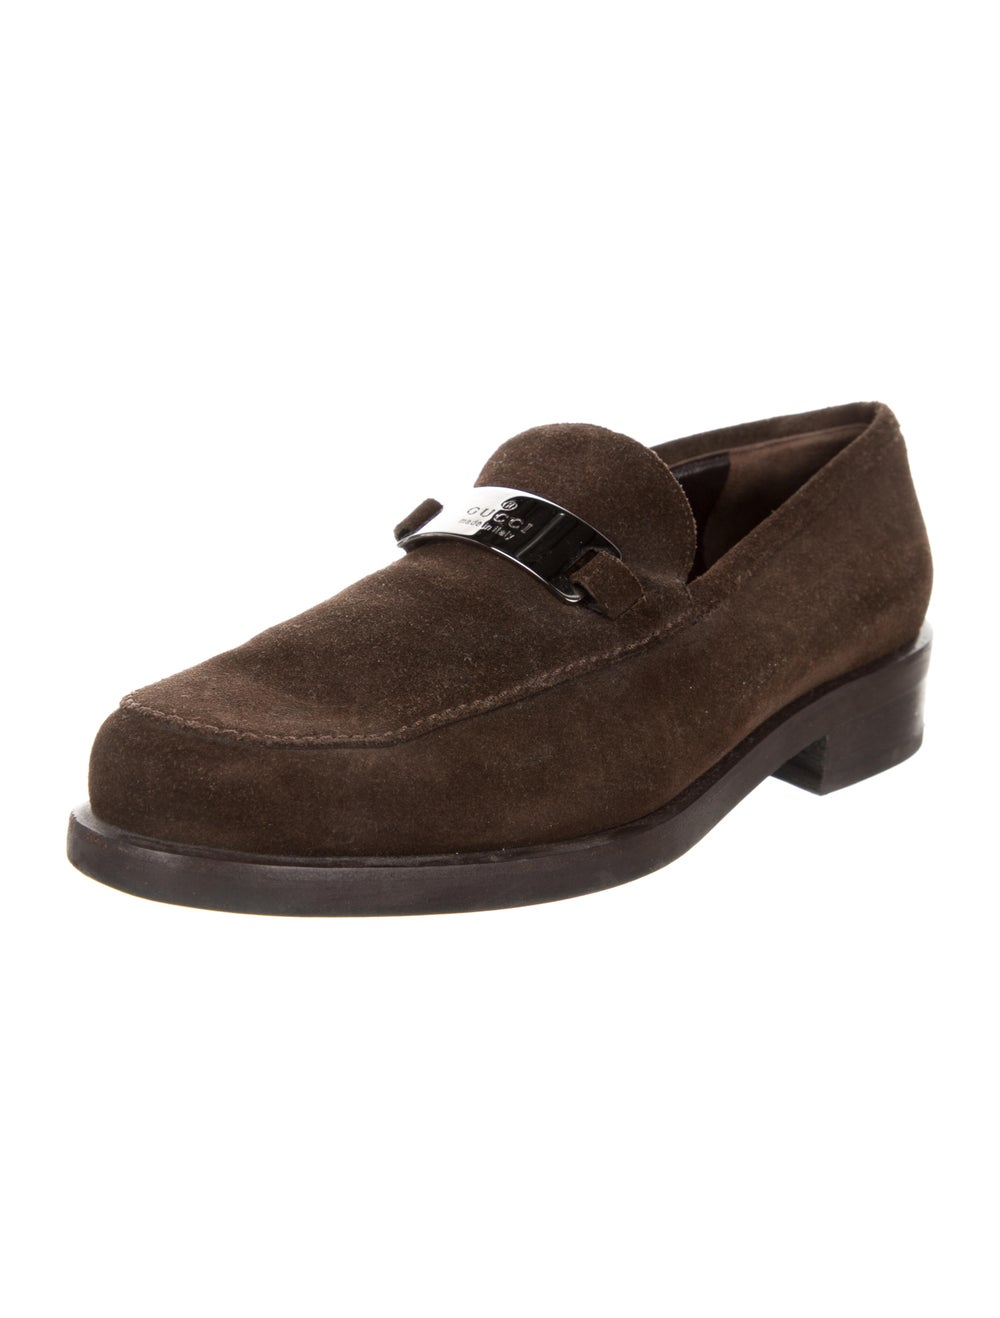 Gucci Suede Loafers Brown - image 2